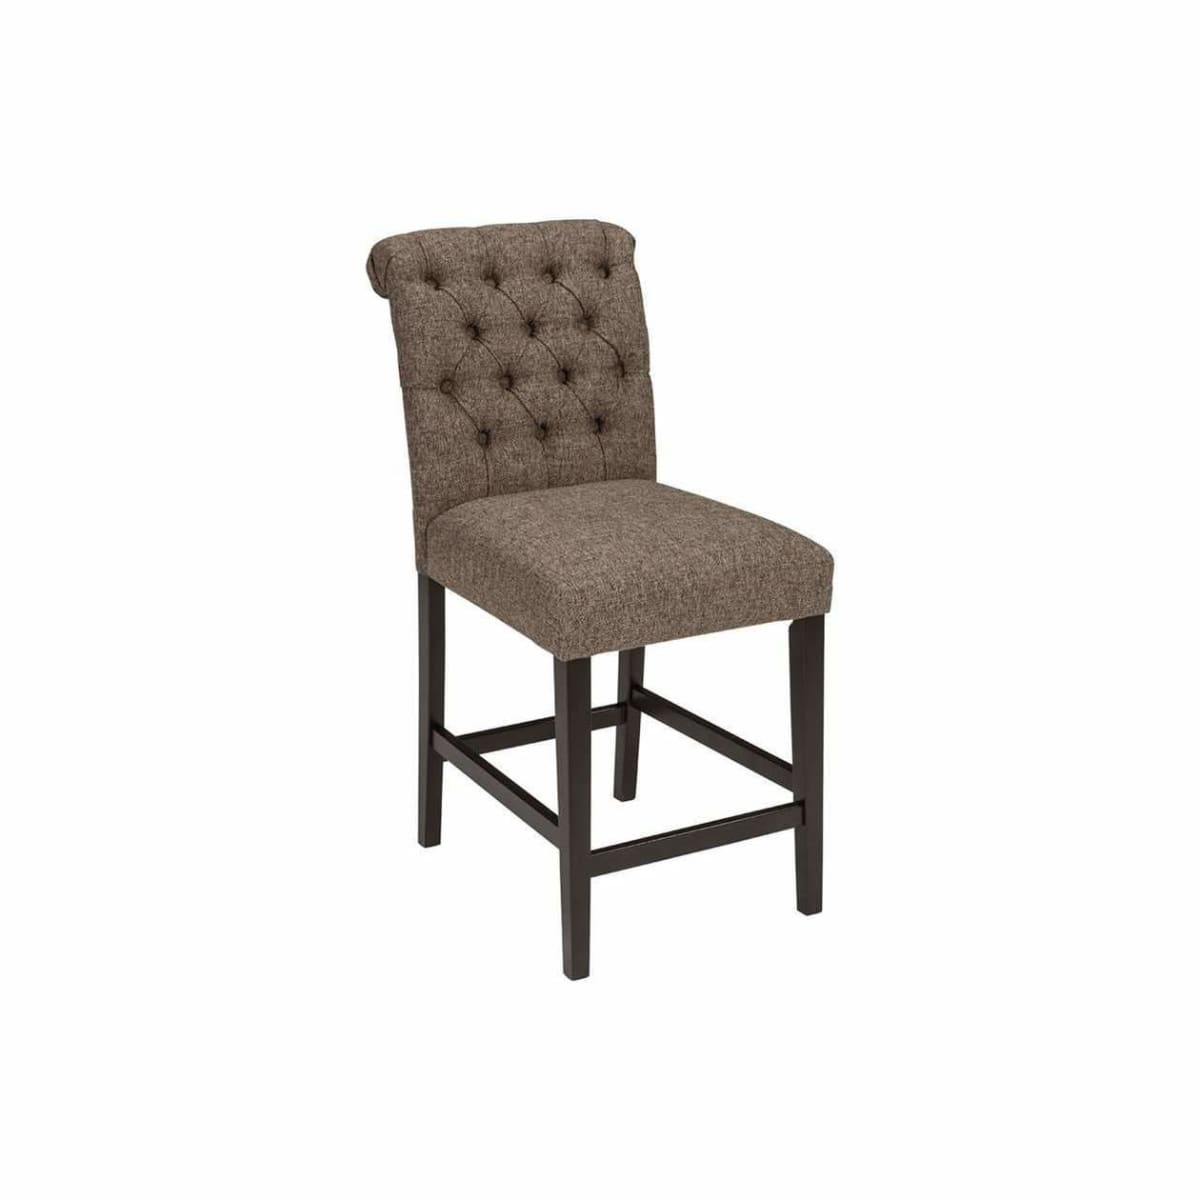 Tripton Graphite Counter Height Bar Stool - BAR STOOL